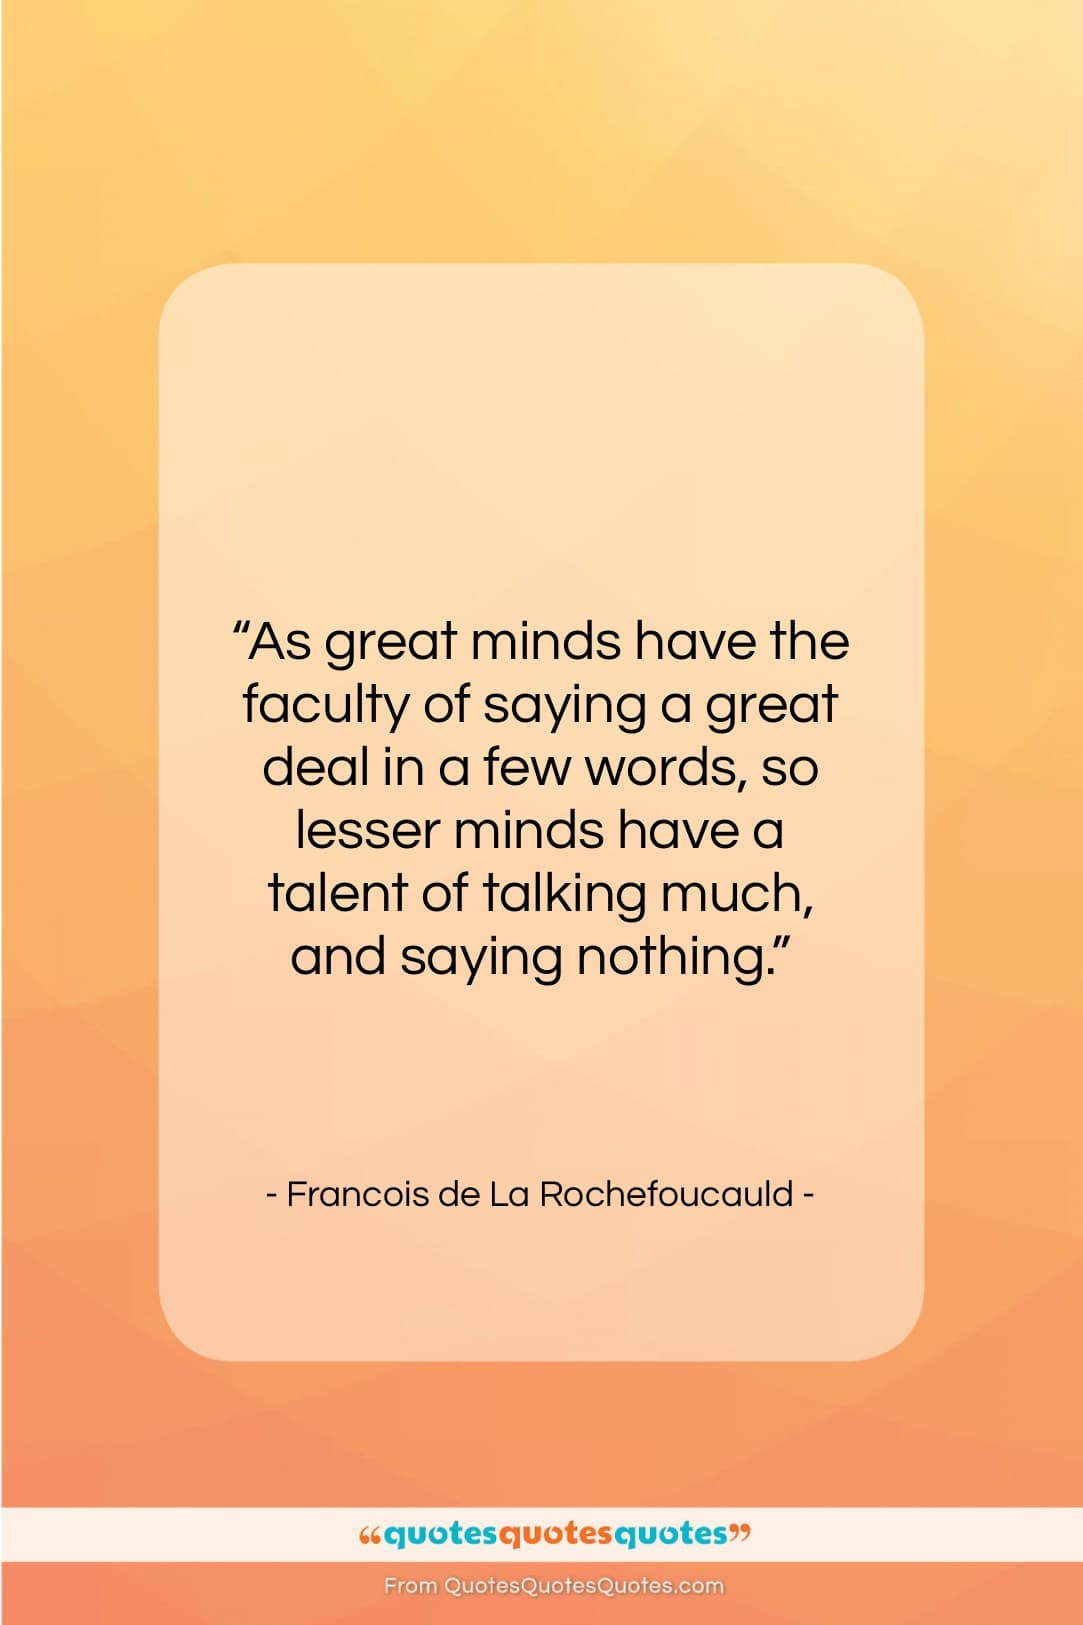 """Francois de La Rochefoucauld quote: """"As great minds have the faculty of…""""- at QuotesQuotesQuotes.com"""